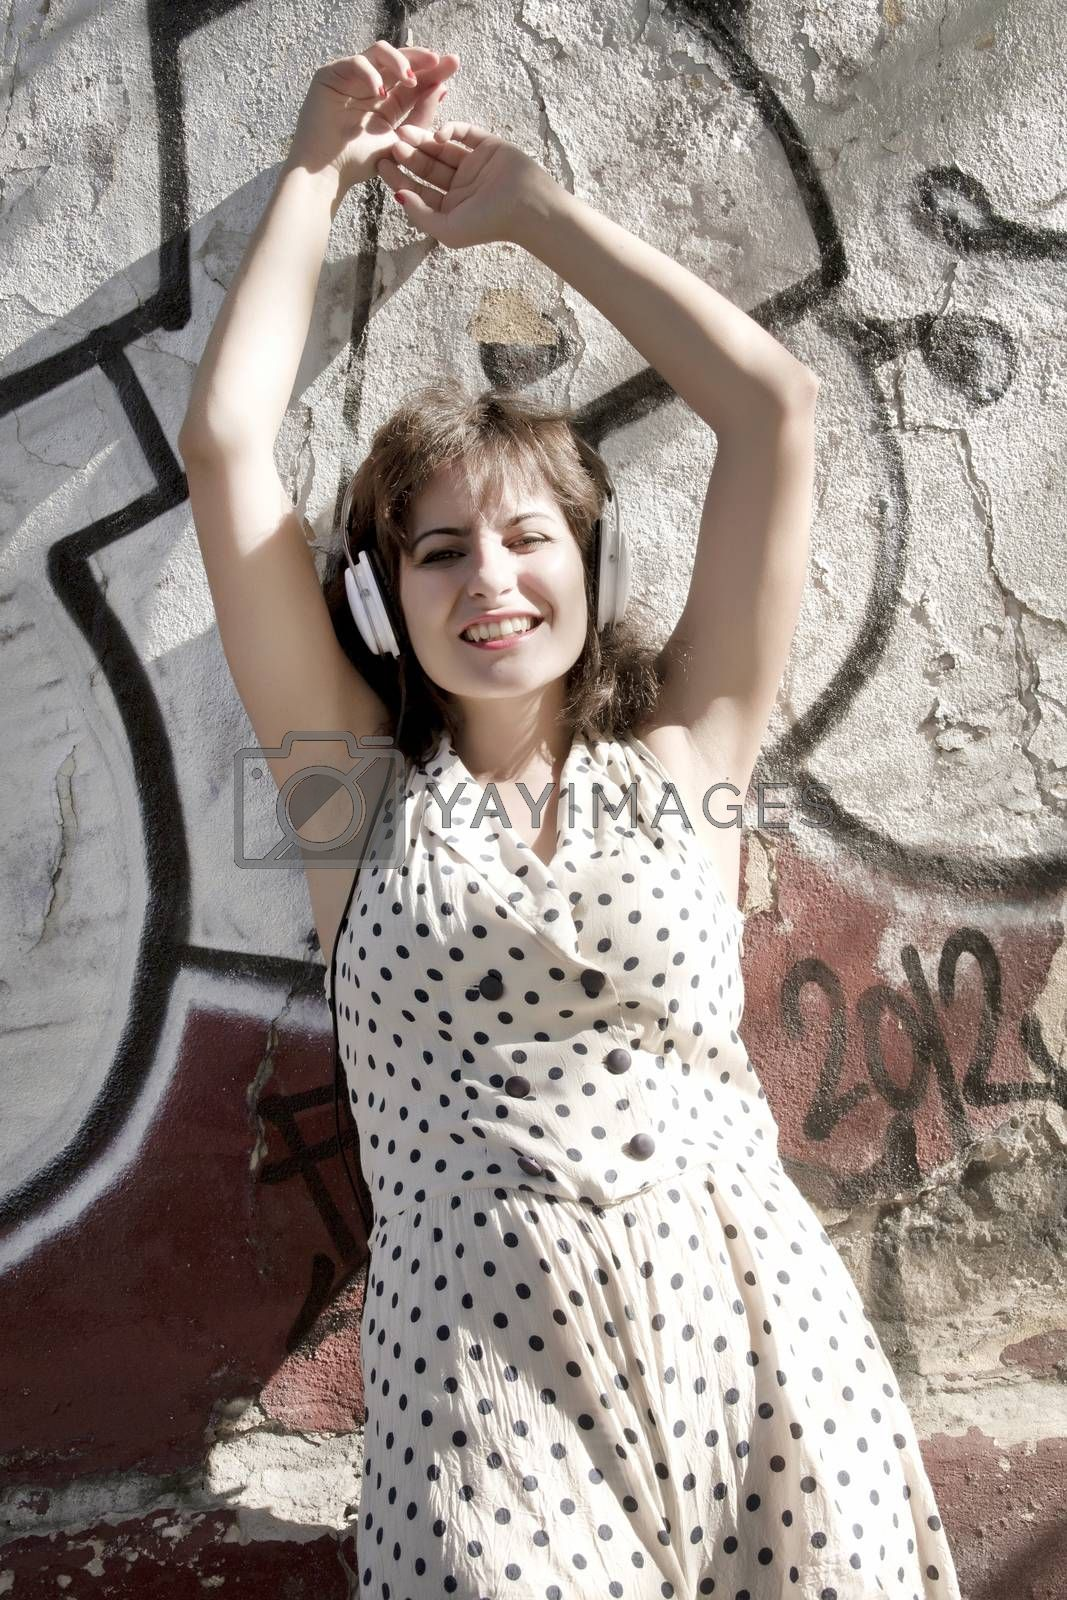 A vintage dressed girl listing to music in a urban environment.